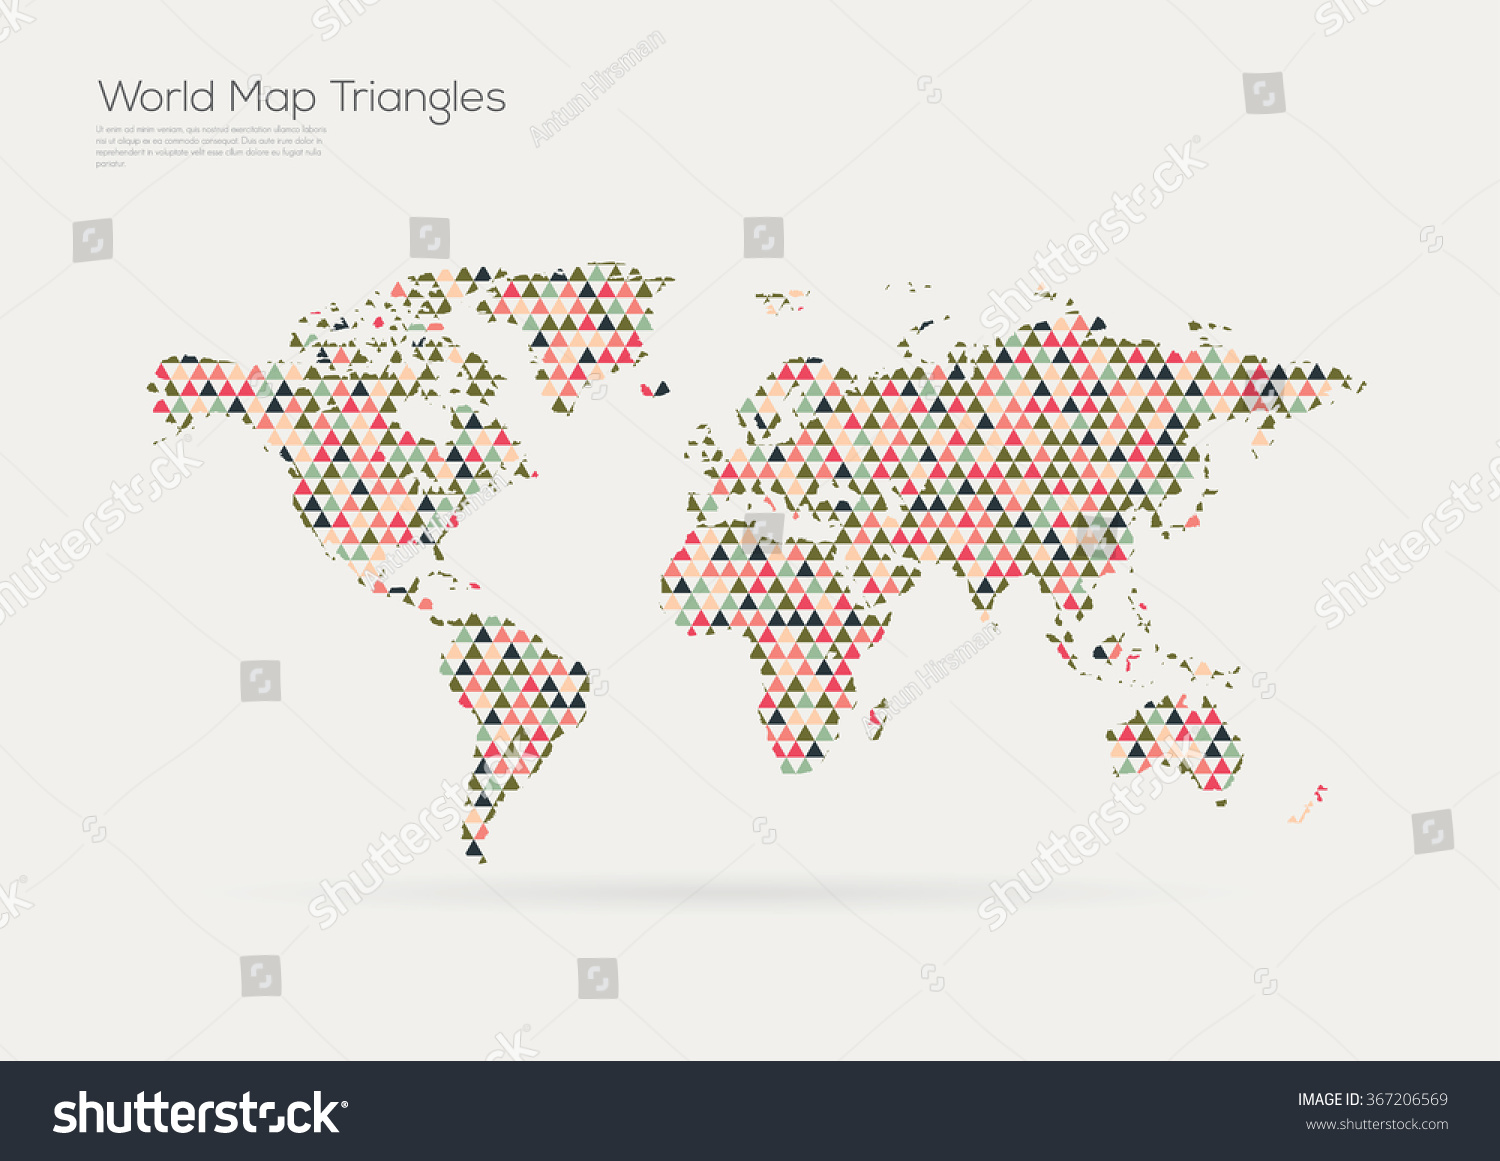 Vector world map design triangle pattern vectores en stock 367206569 vector world map design triangle pattern continents gumiabroncs Image collections